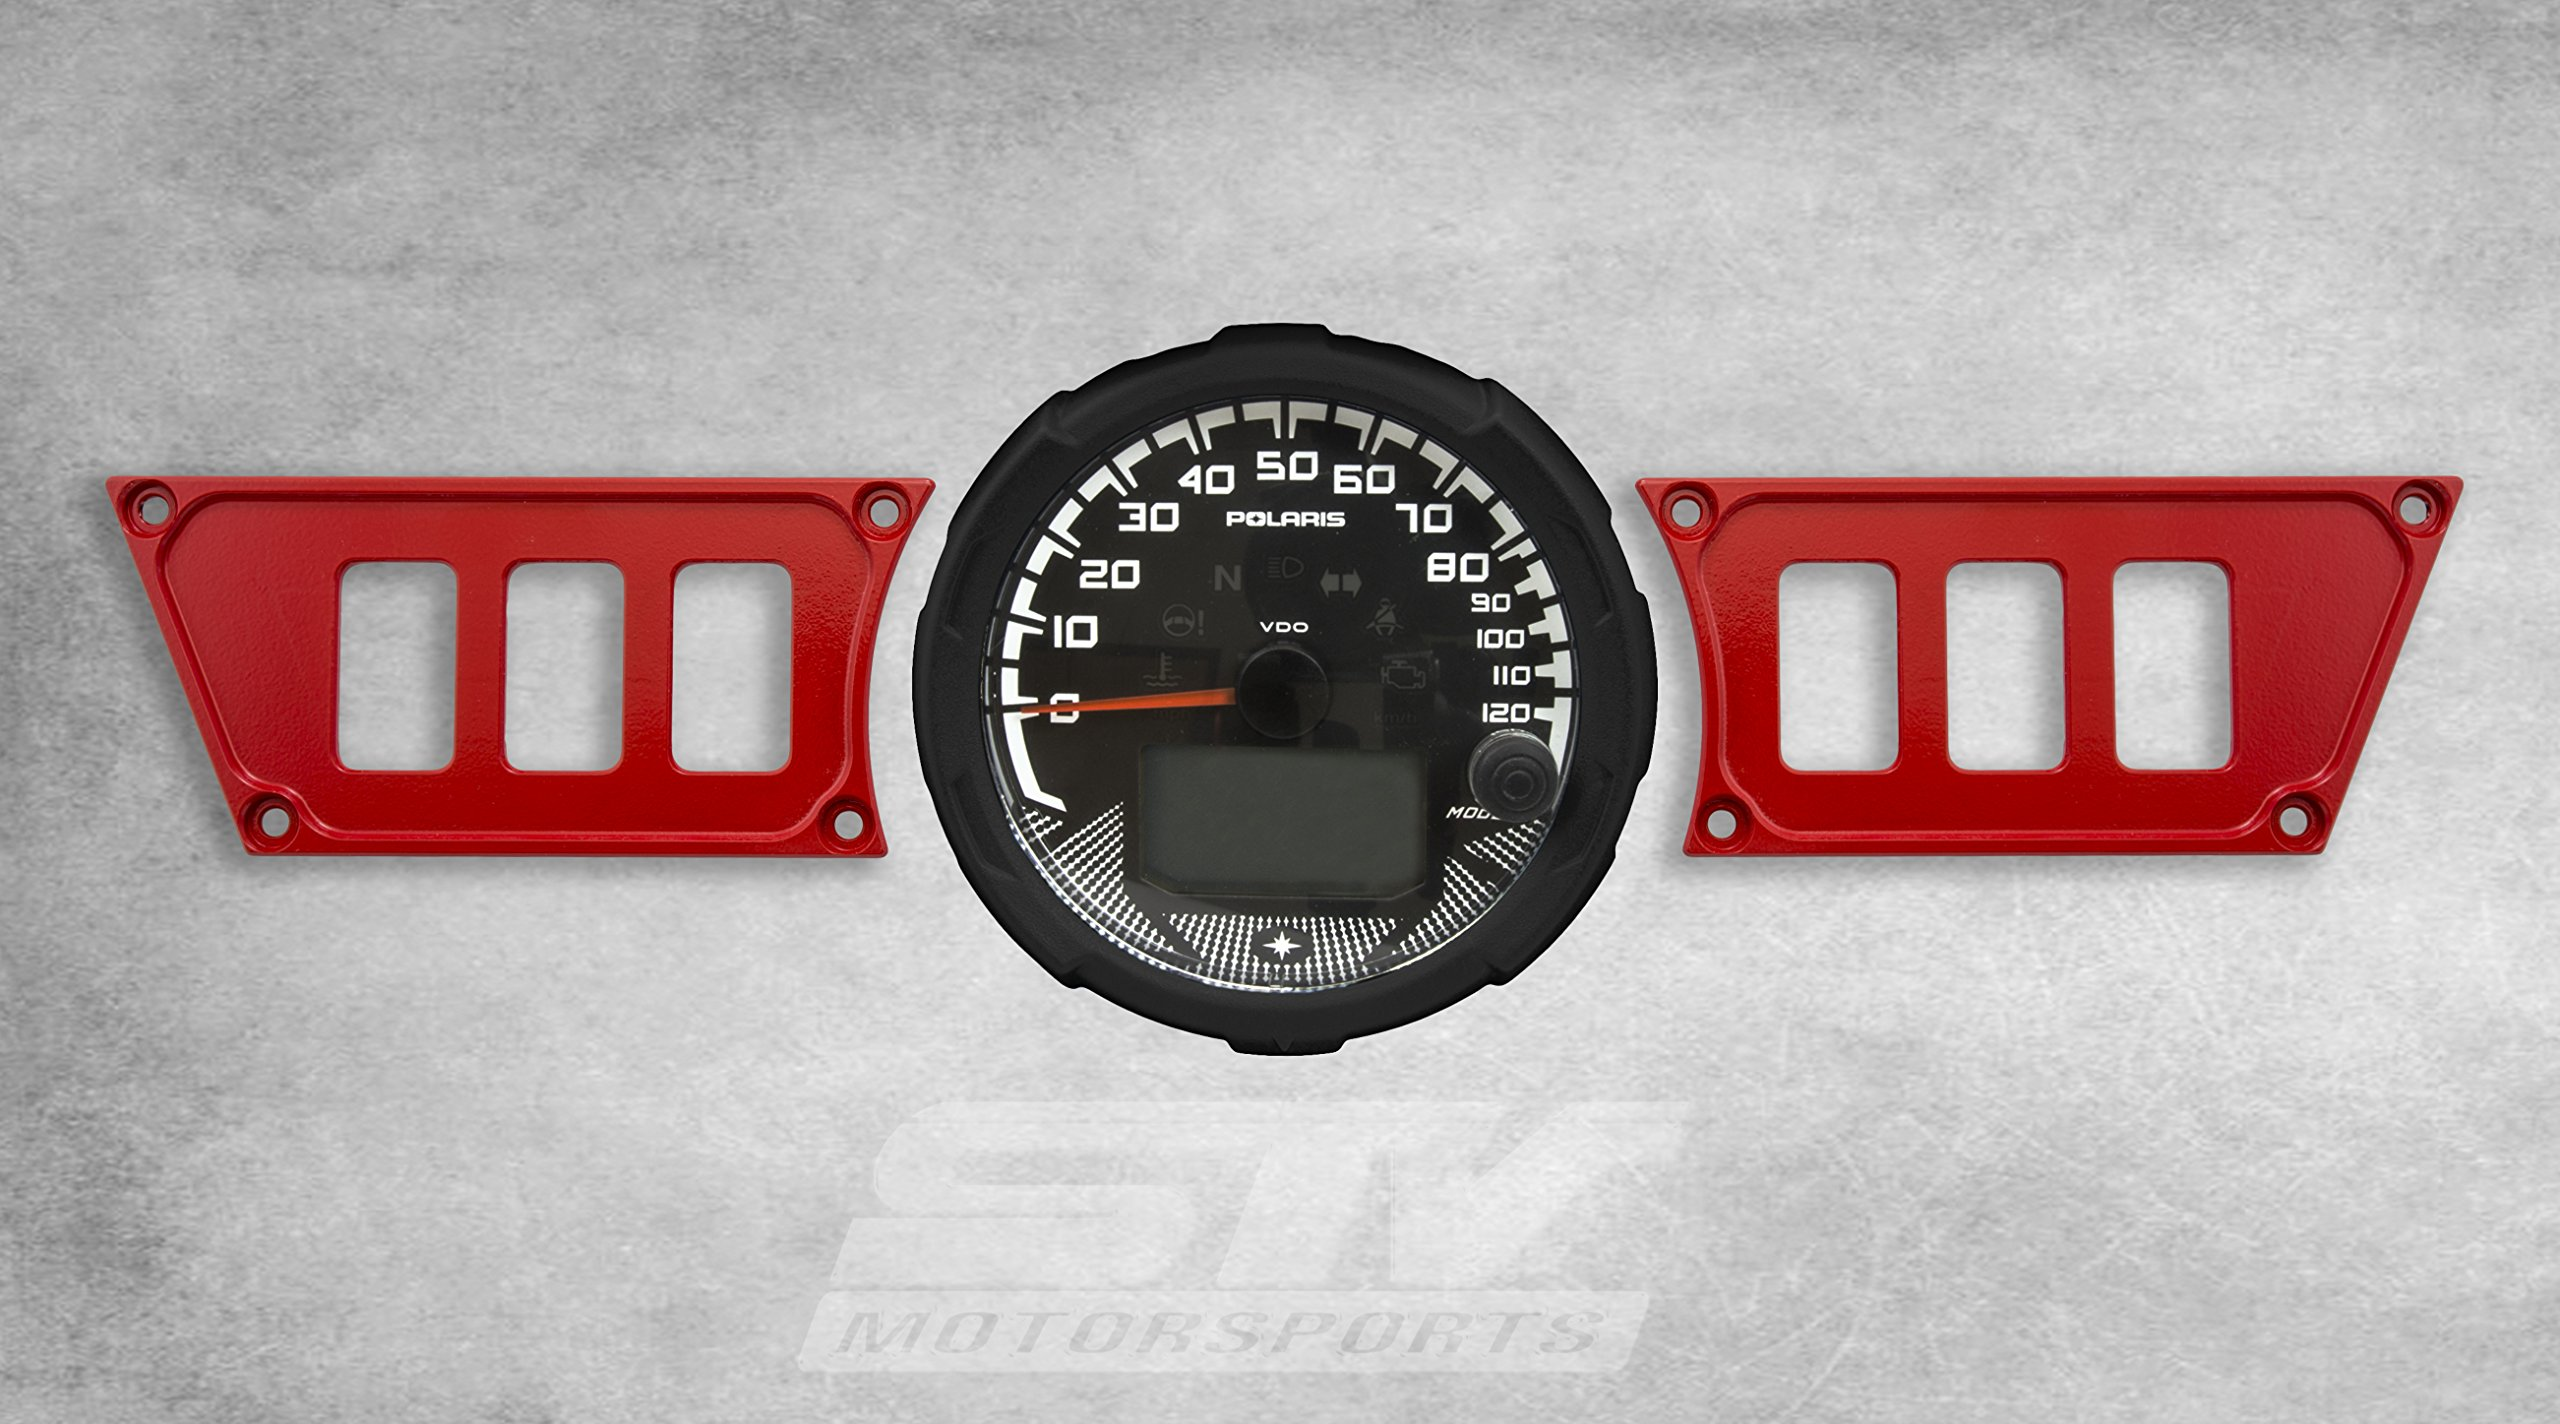 STV Motorsports Custom Aluminum Red Dash Panel for Polaris RZR XP 1000 with 6 Switch Openings (no switches included)